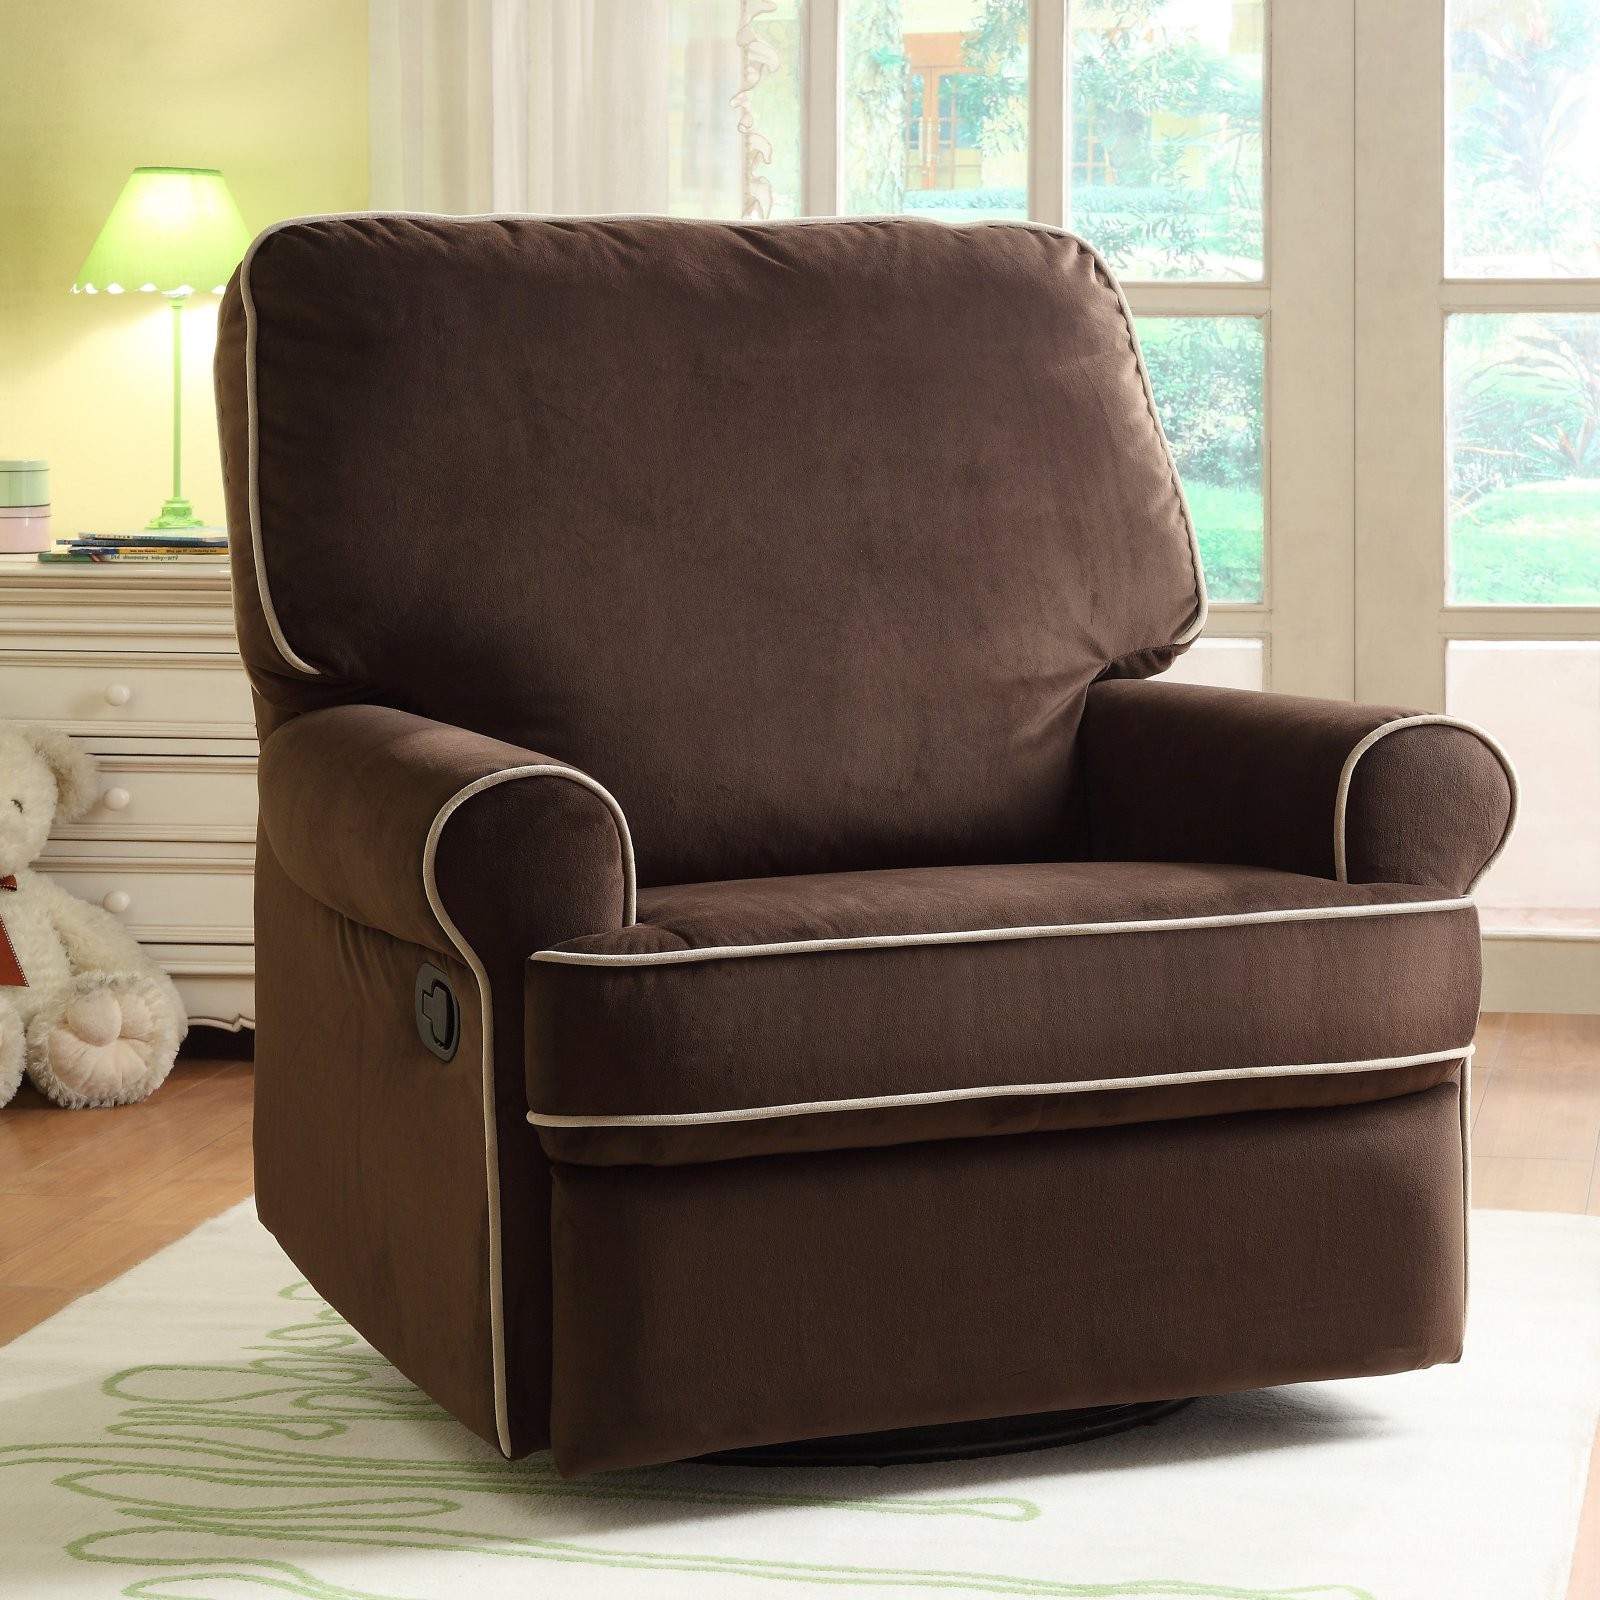 Home Meridian International Birch Hill Swivel Glider Recliner Stella Contrast Piping, Brown